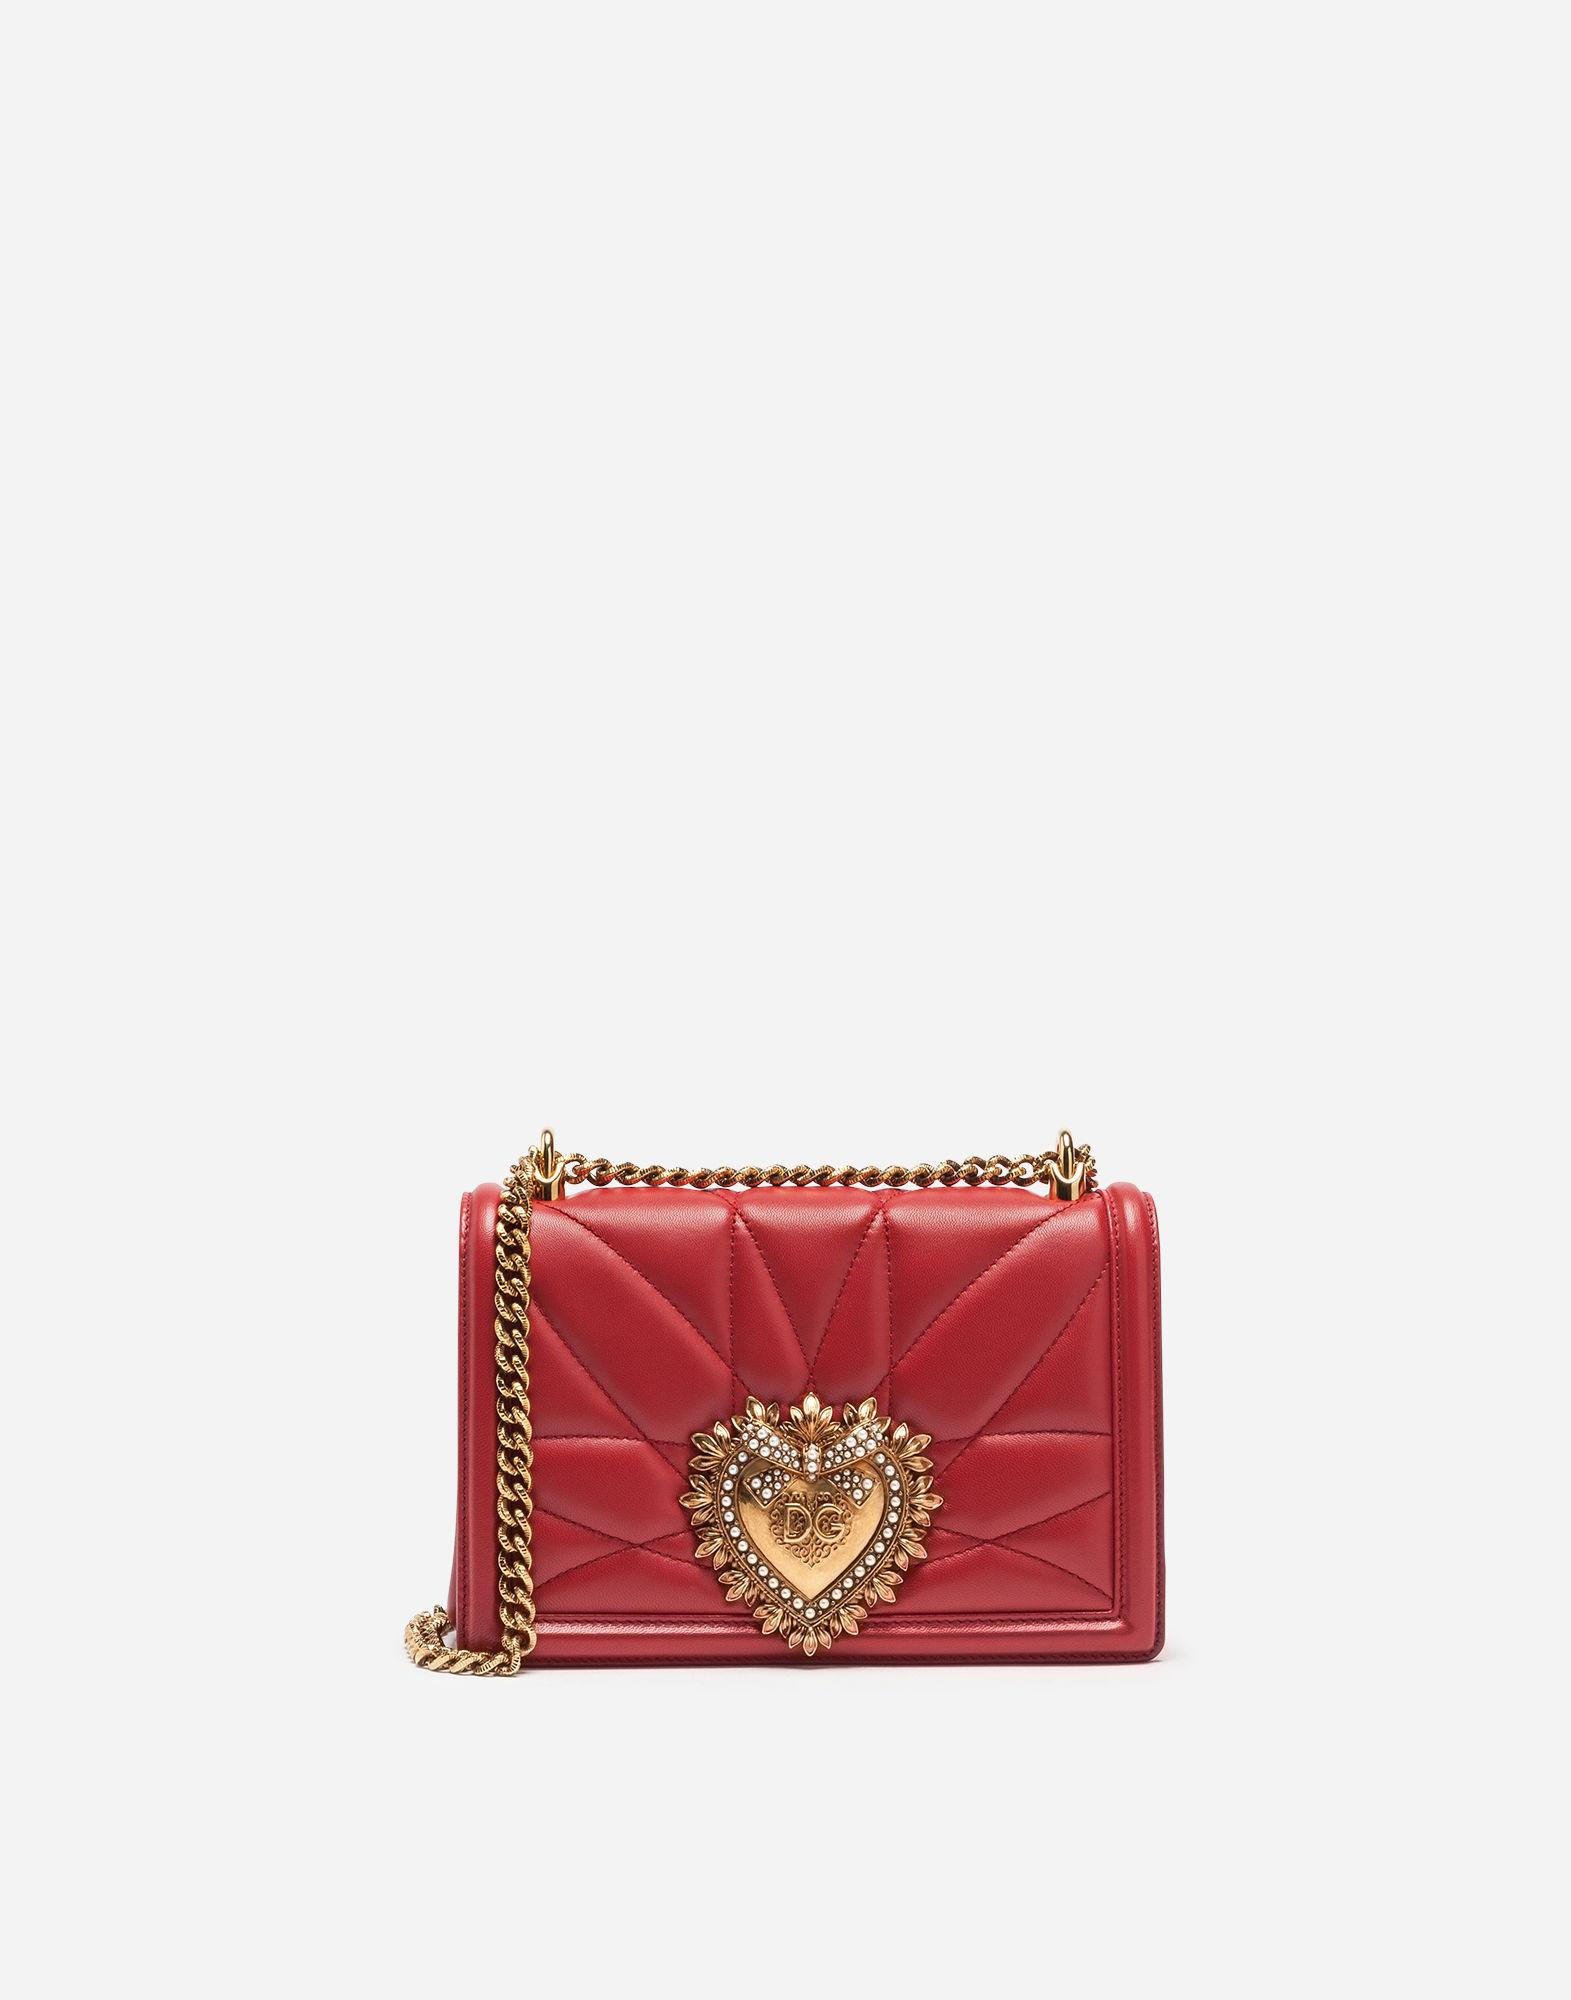 a72b6f8c04 Dolce   Gabbana. Women s Red Medium Devotion Bag In Quilted Nappa Leather